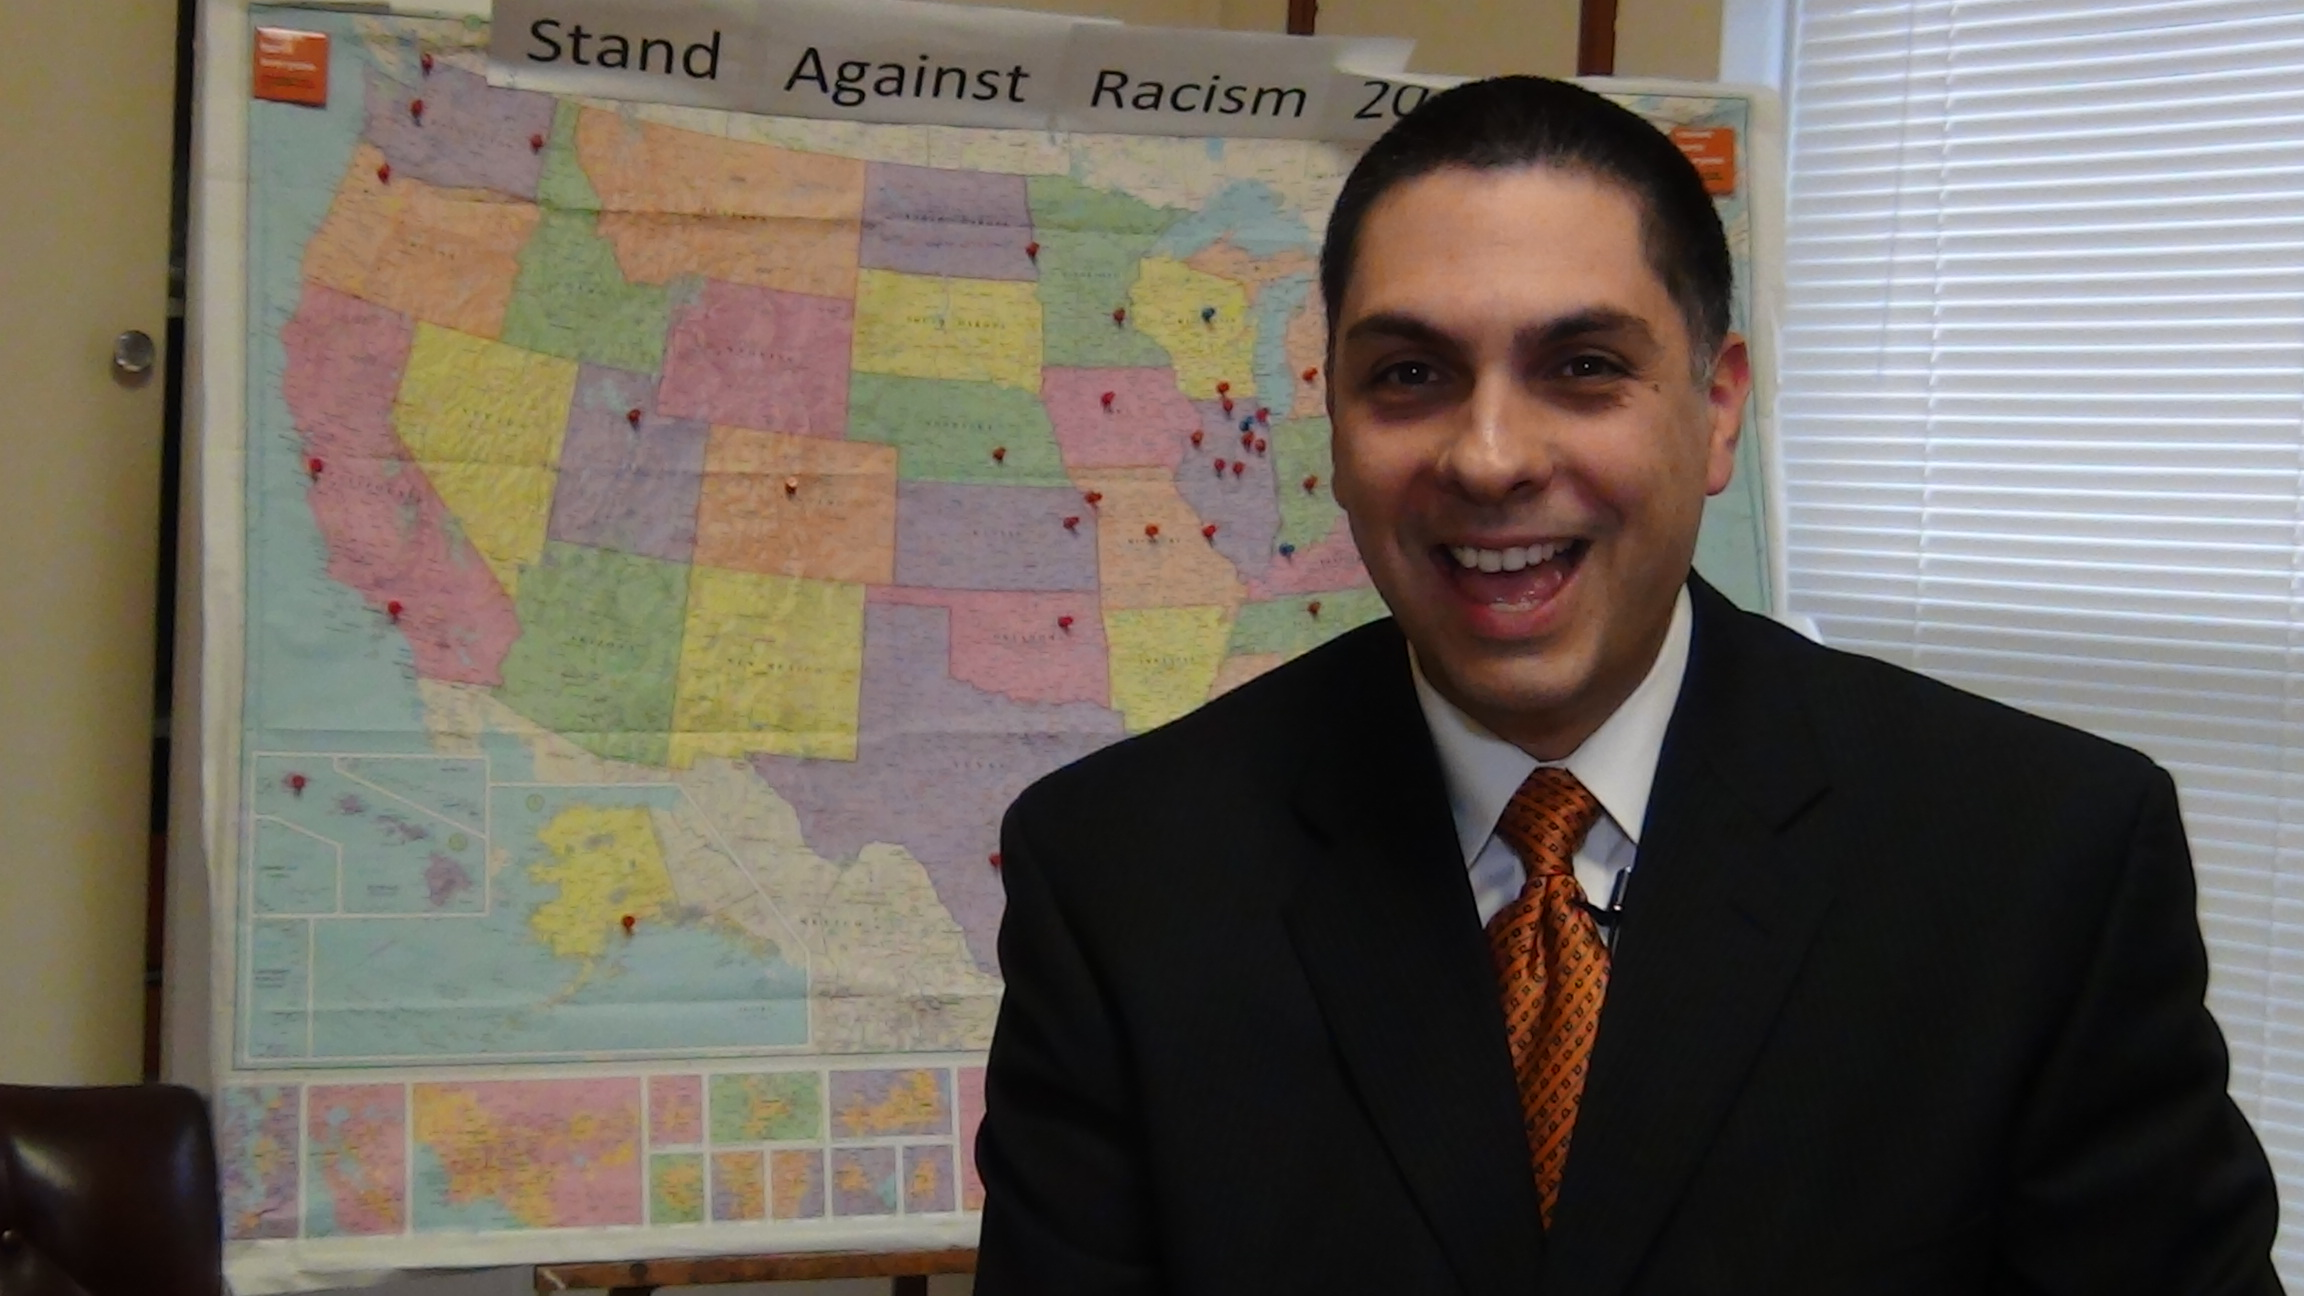 Jose Hernandez of the YWCA of Greater Trenton prepares to tape a promotional message about the Stand Against Racism program